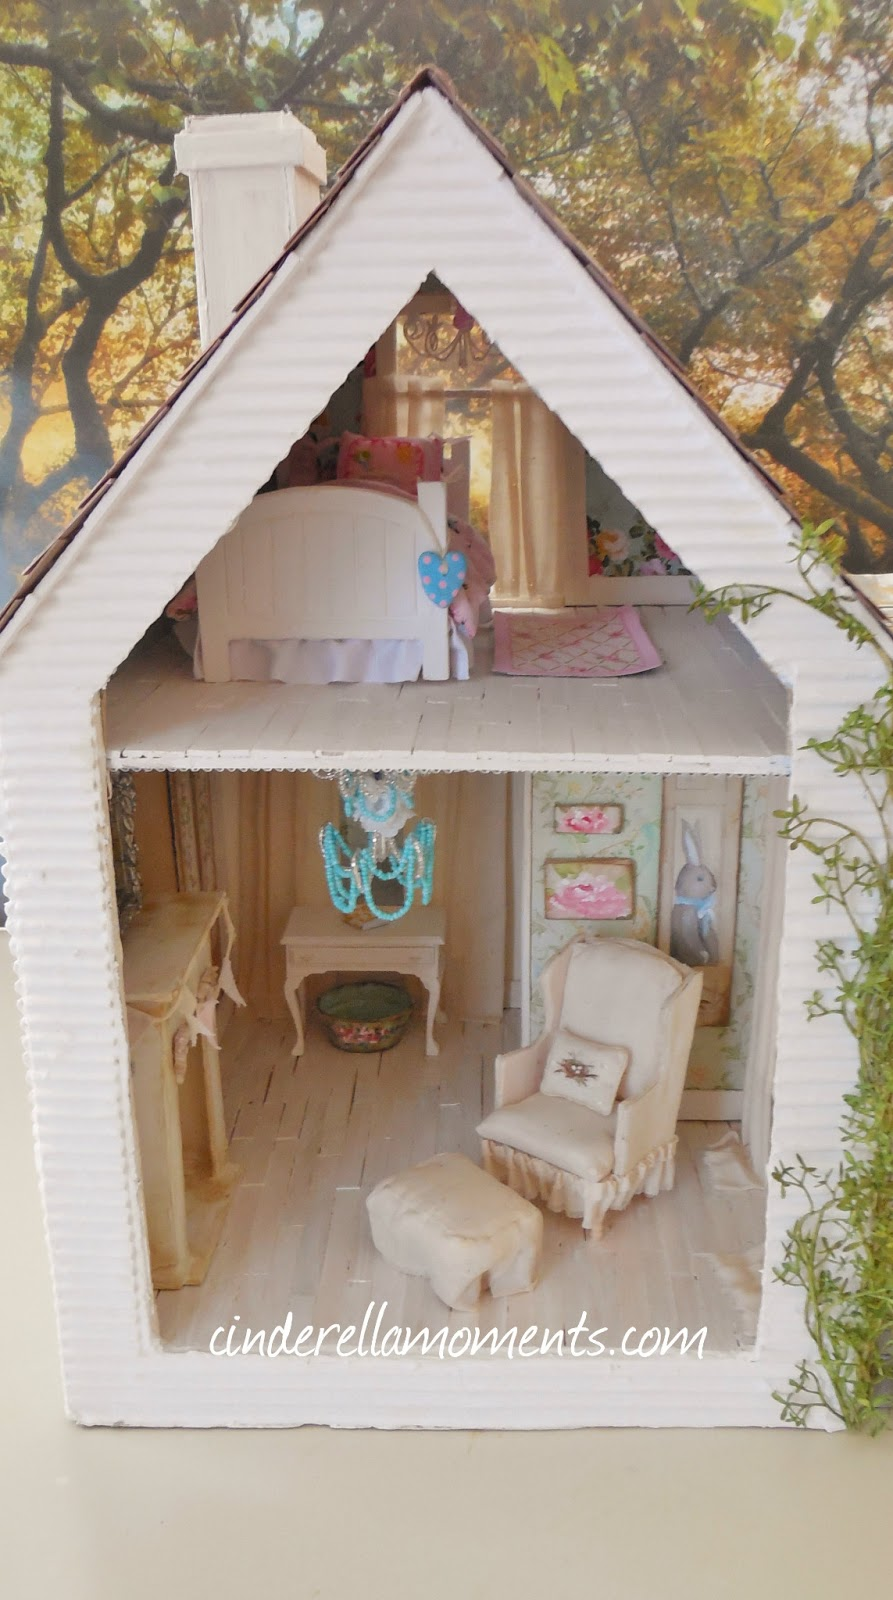 Cinderella Moments Baleine Beach Cottage Dollhouse Finished